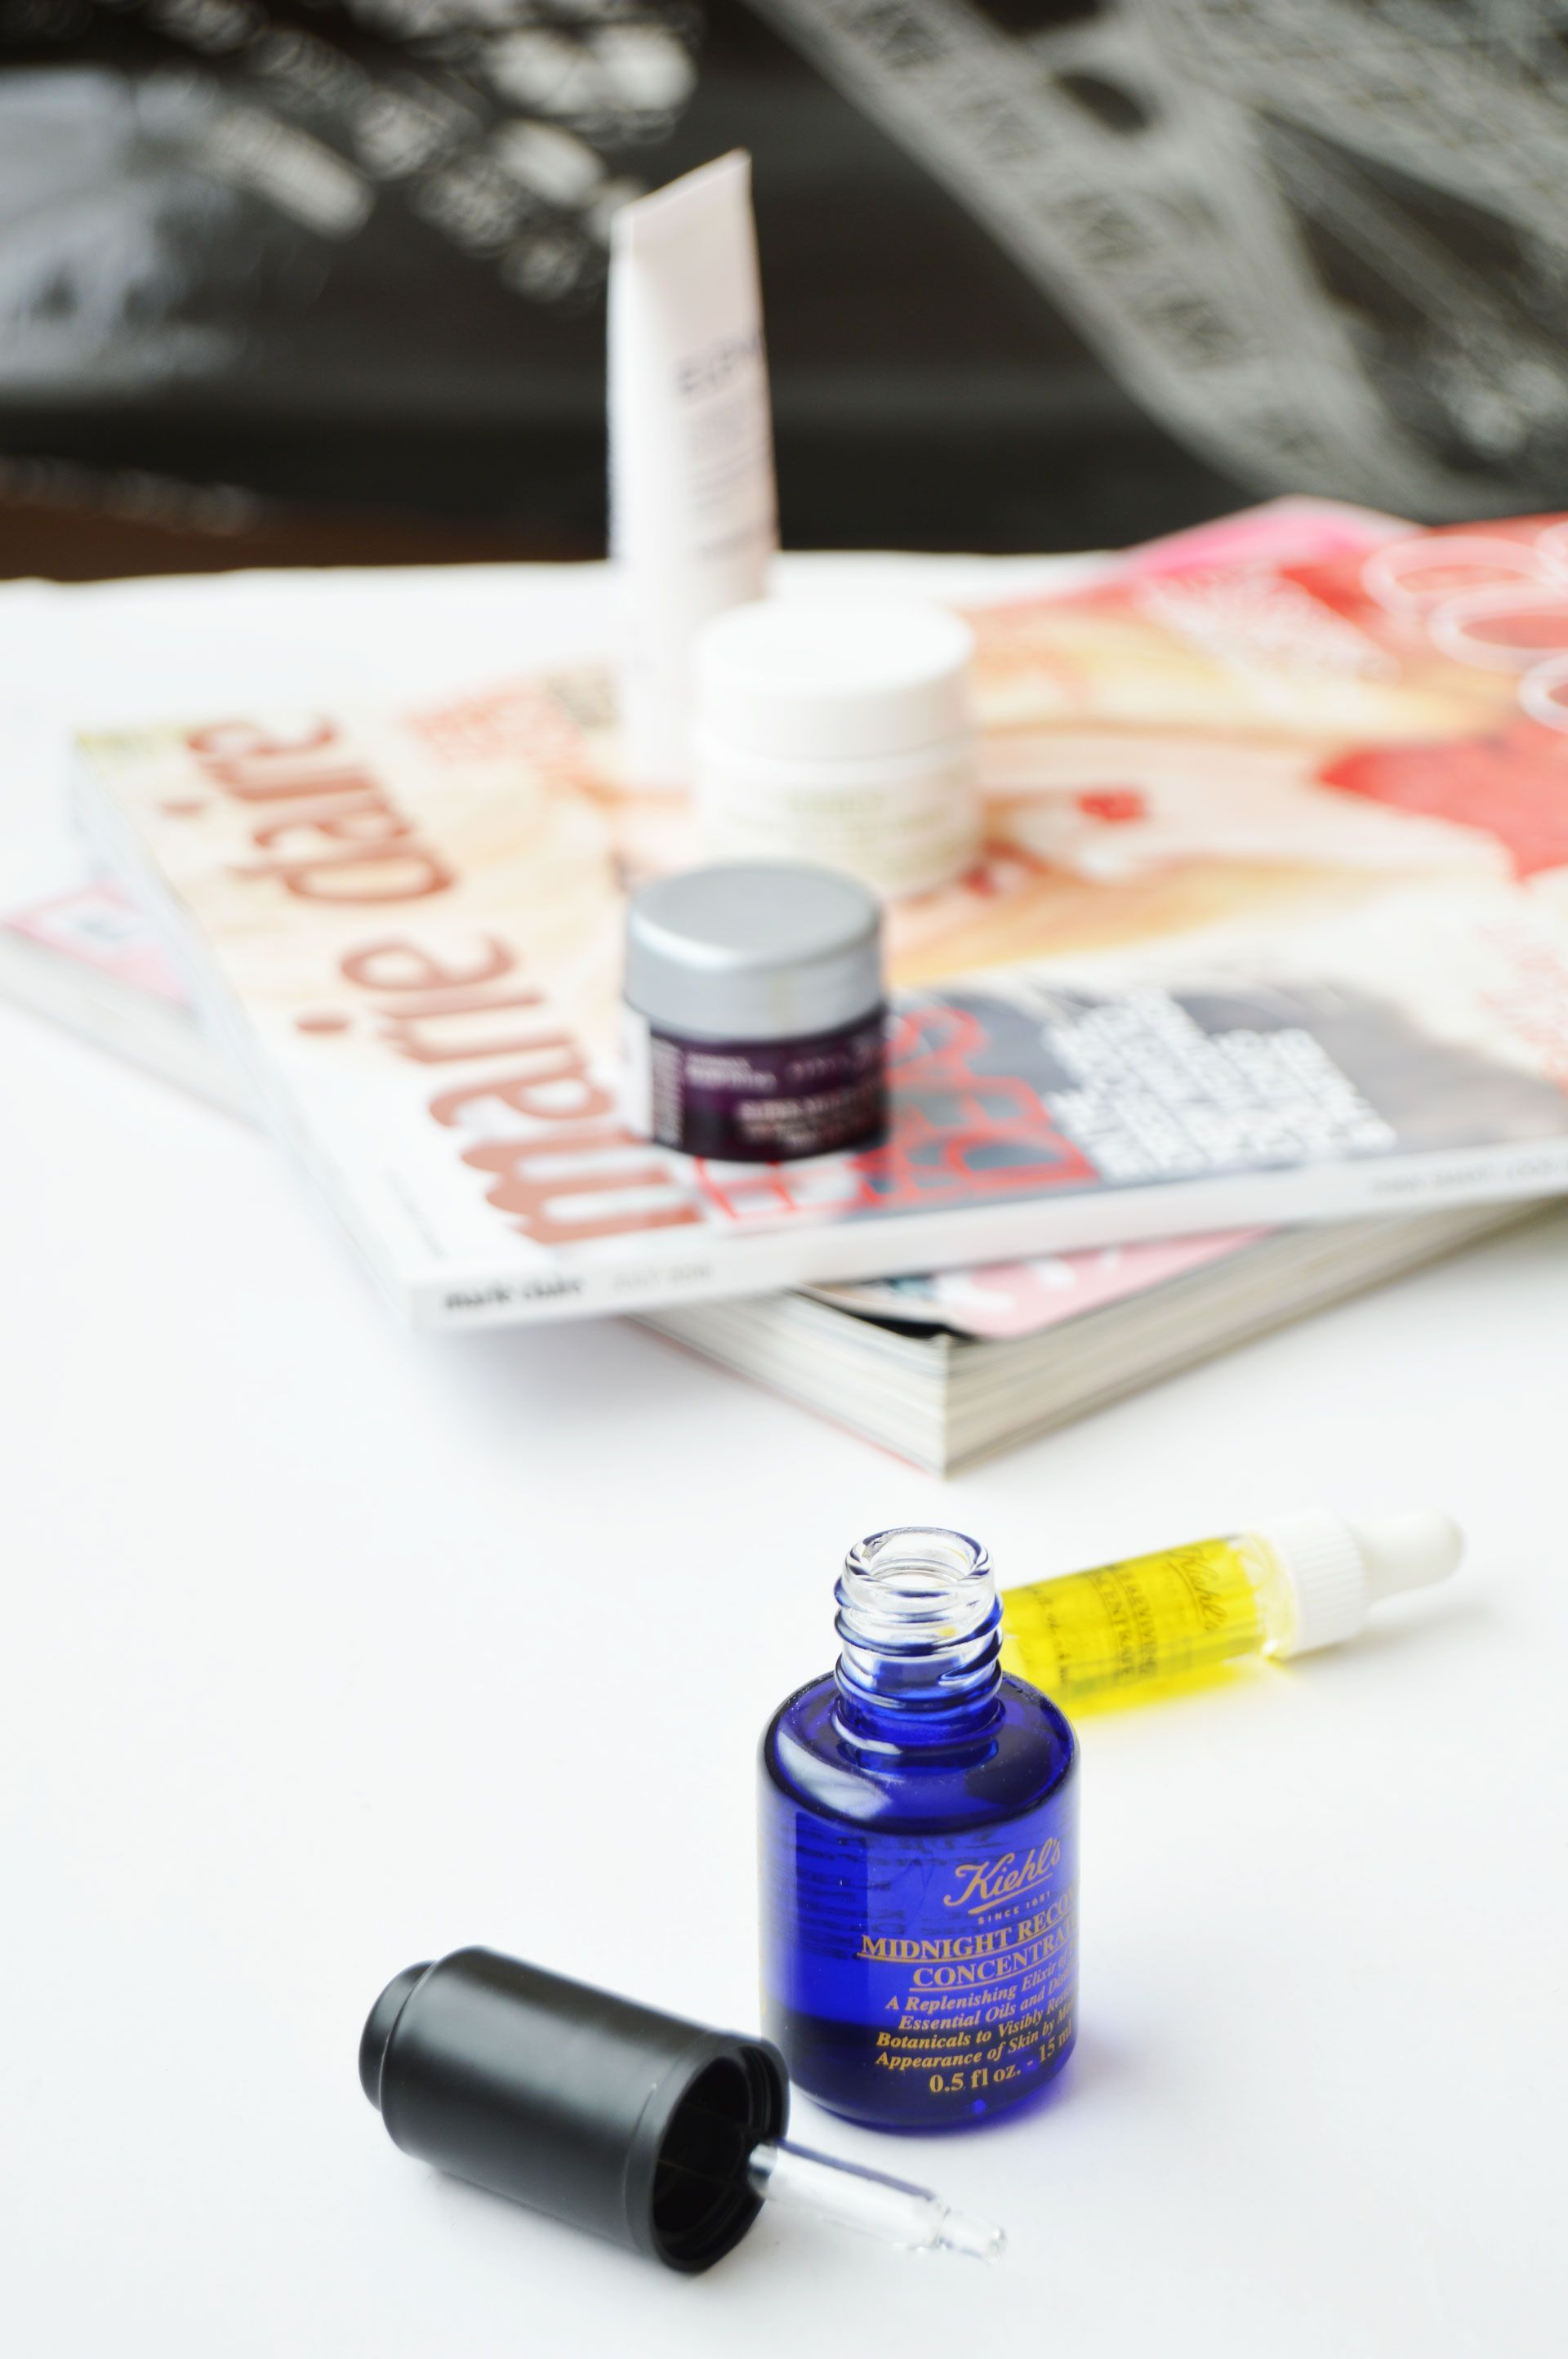 Skincare Routine with Kiehl's Midnight Recovery Concentrate | It is lightweight and fast absorbing oil, which will give fresh radiant looking skin.